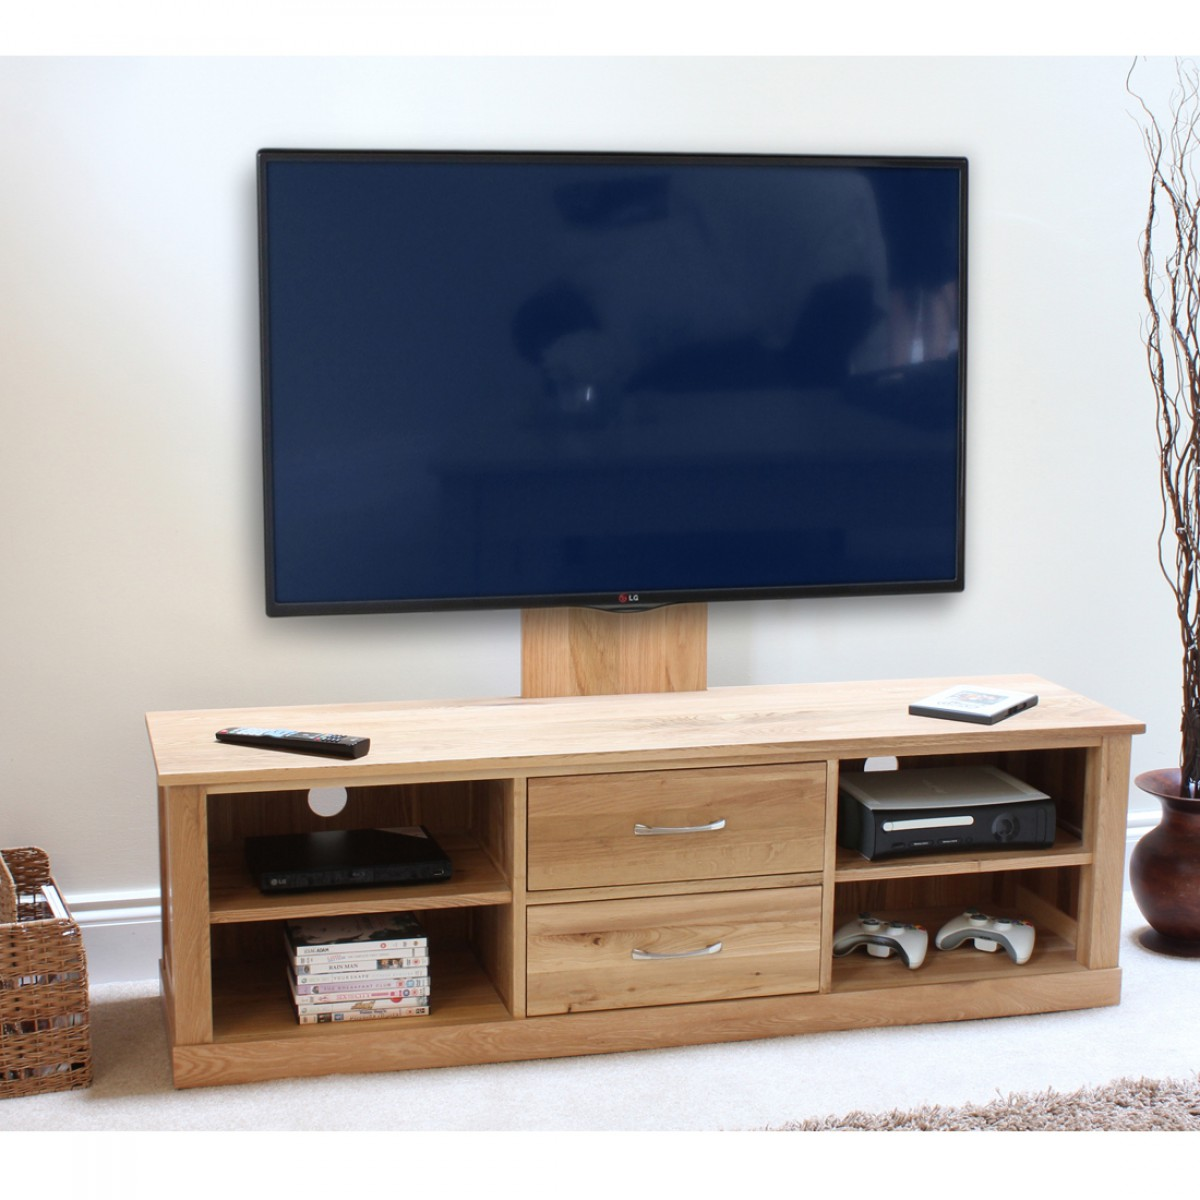 Mobel Tv Details About Baumhaus Mobel Oak Widescreen Tv Cabinet Mounted Adjustable Bracket Solid Oak